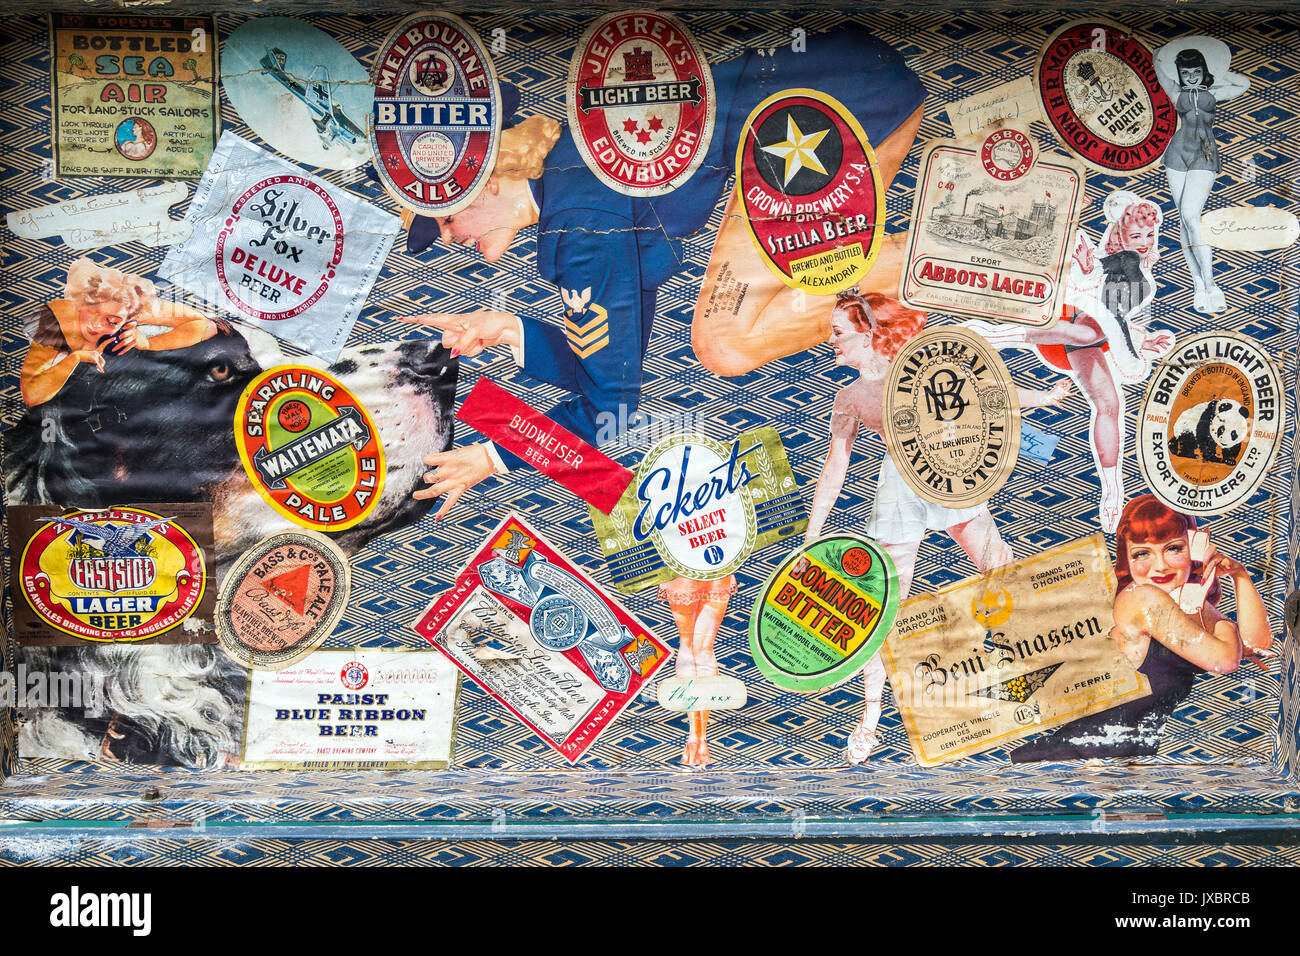 trunk containing old beer labels, abbots lager,australian suitcase, British light beer,suitcase,Suitcase, Label, Travel, Journey, Old, Vacations, Bag, - Stock Image